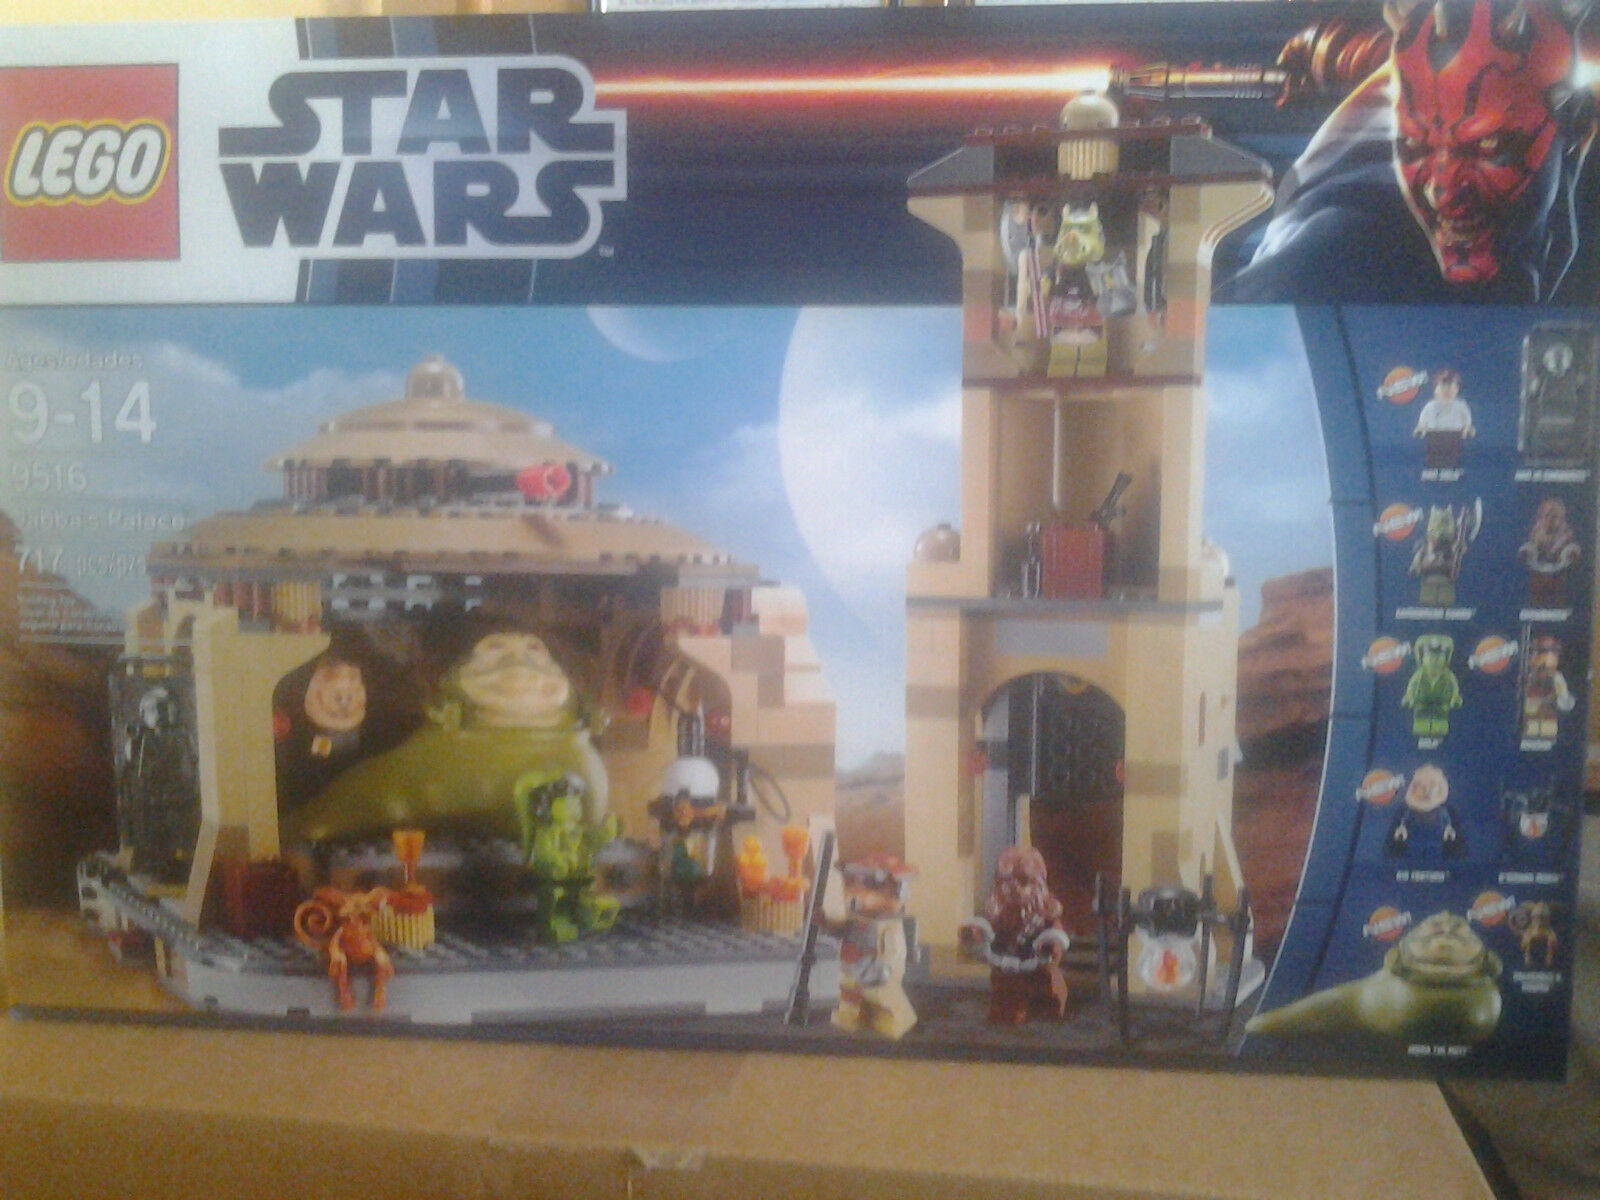 LEGO STAR STAR STAR WARS JABBAS PALACE 9516 MISB (RETIRED) 56e94a